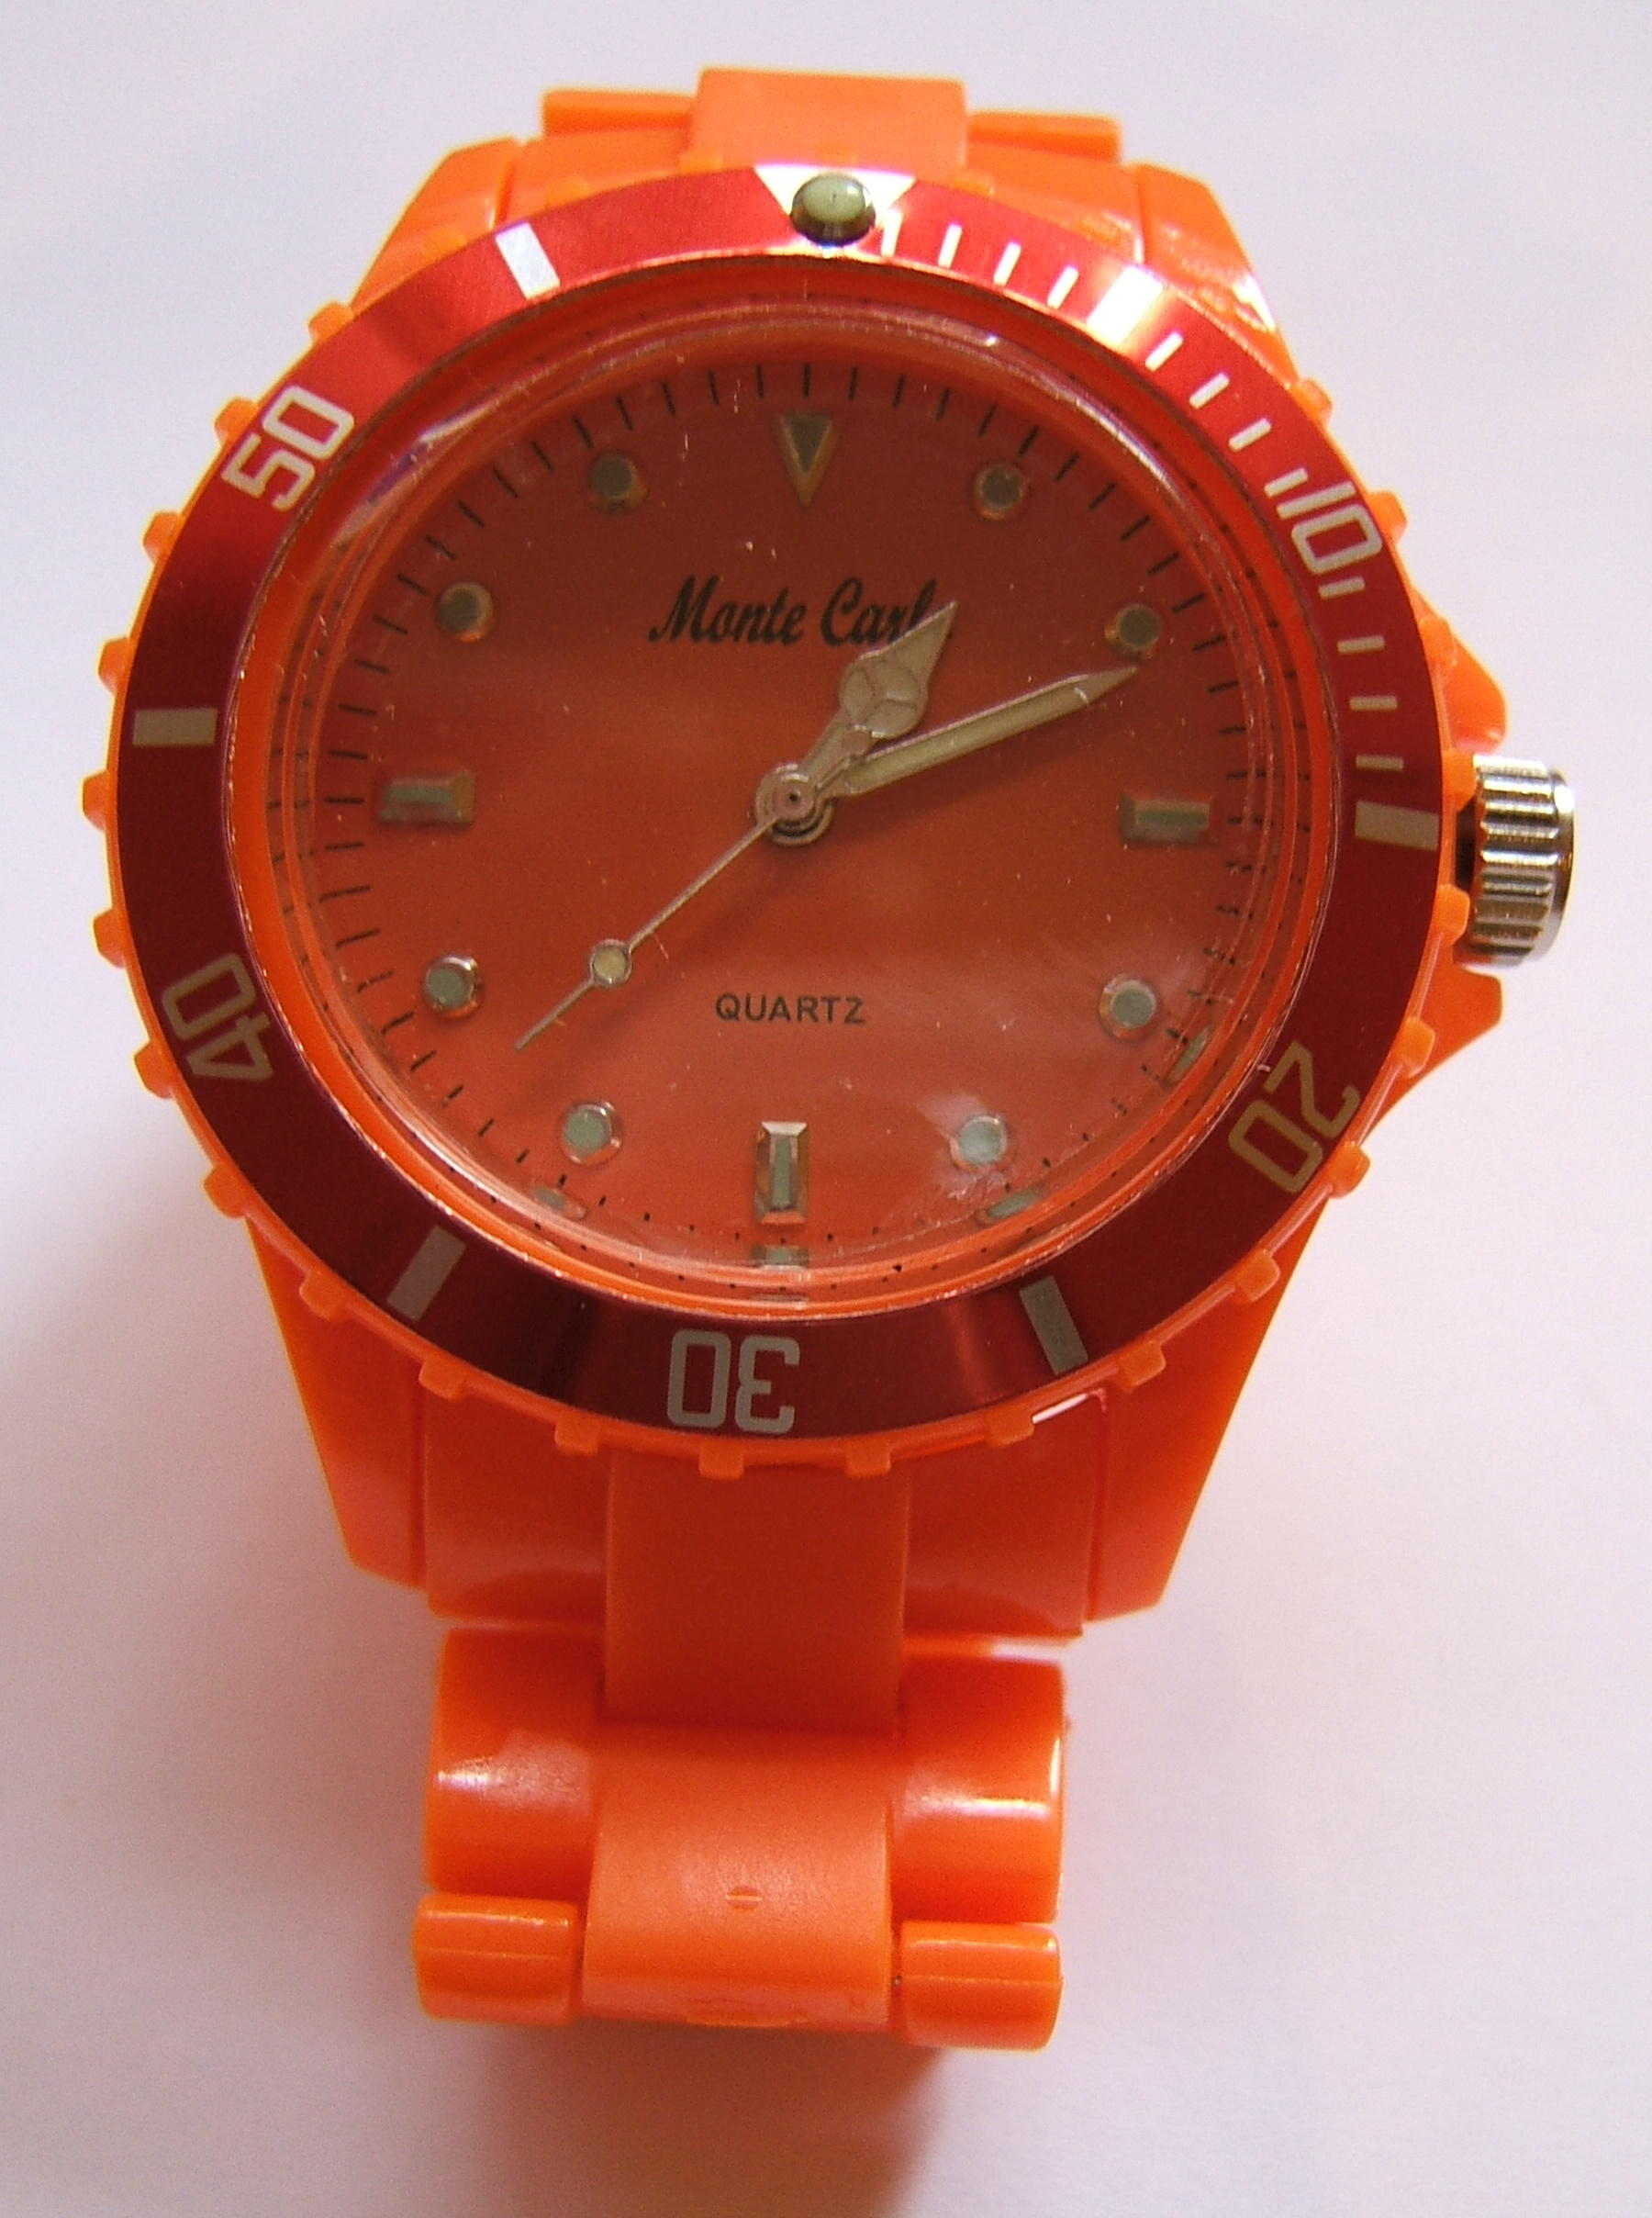 Monte Carlo Unisex Fashion Watch Orange